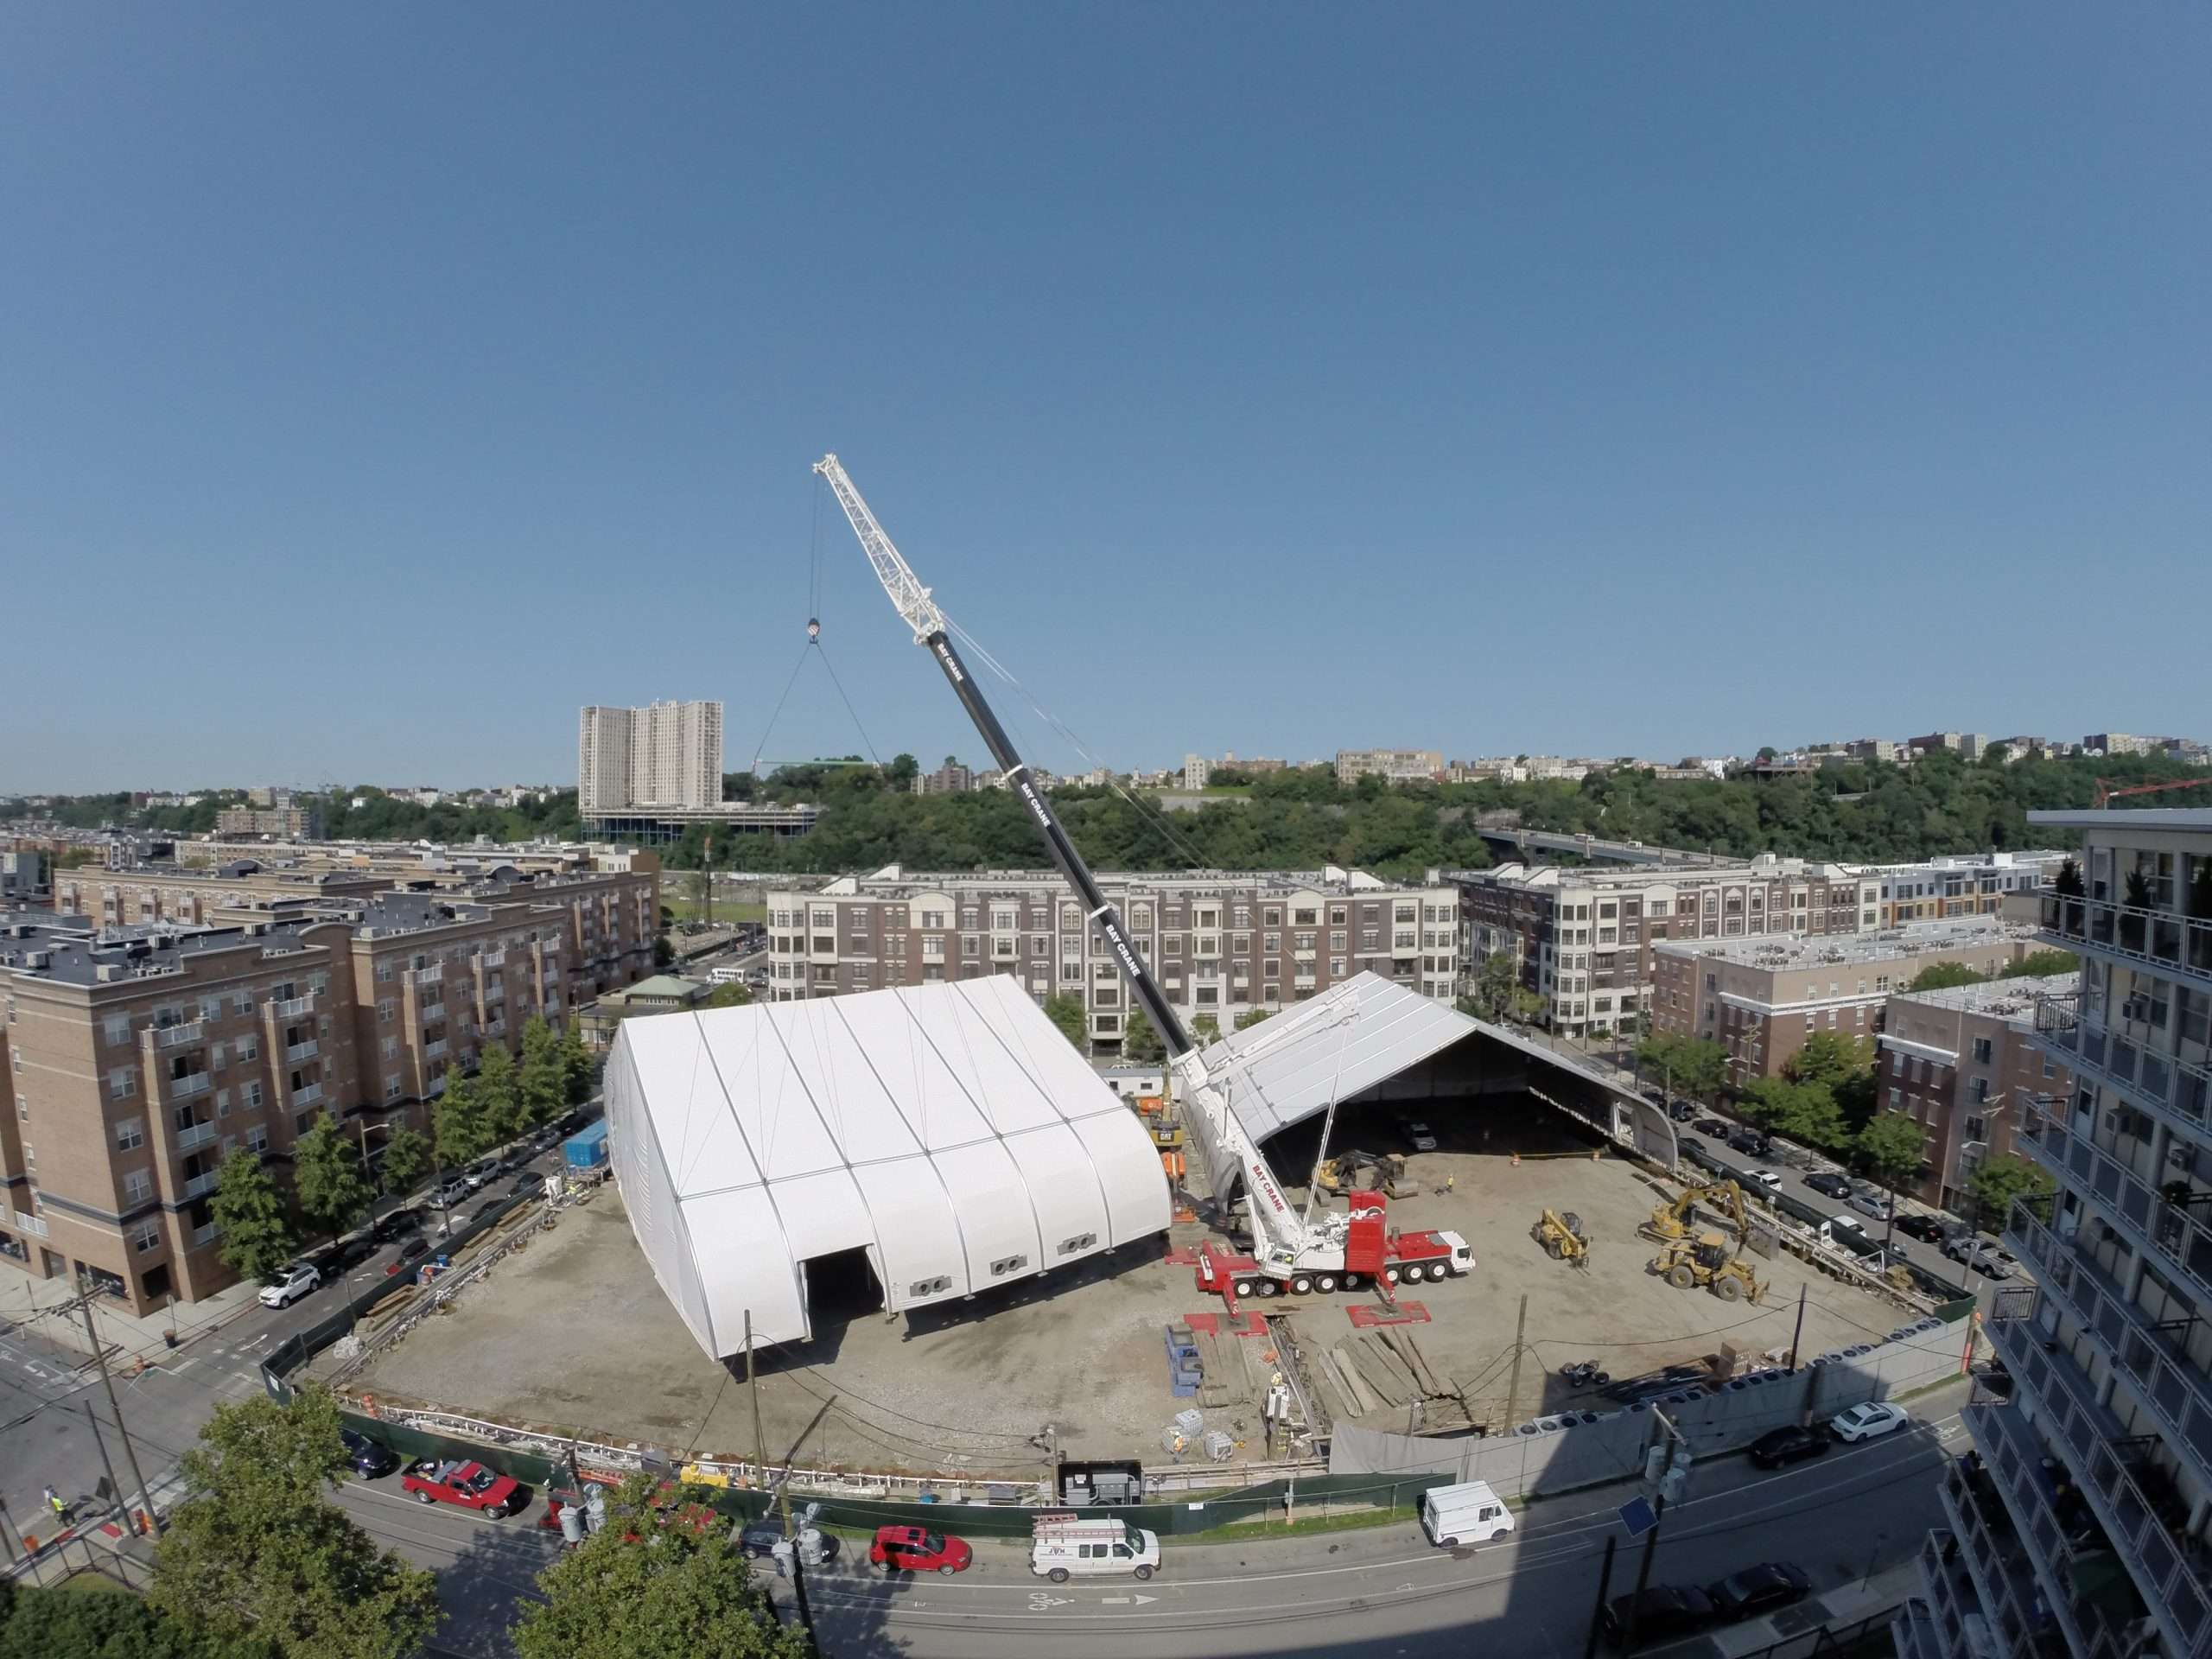 fabric building being lifted and relocated by crane lift at an industrial site in New Jersey